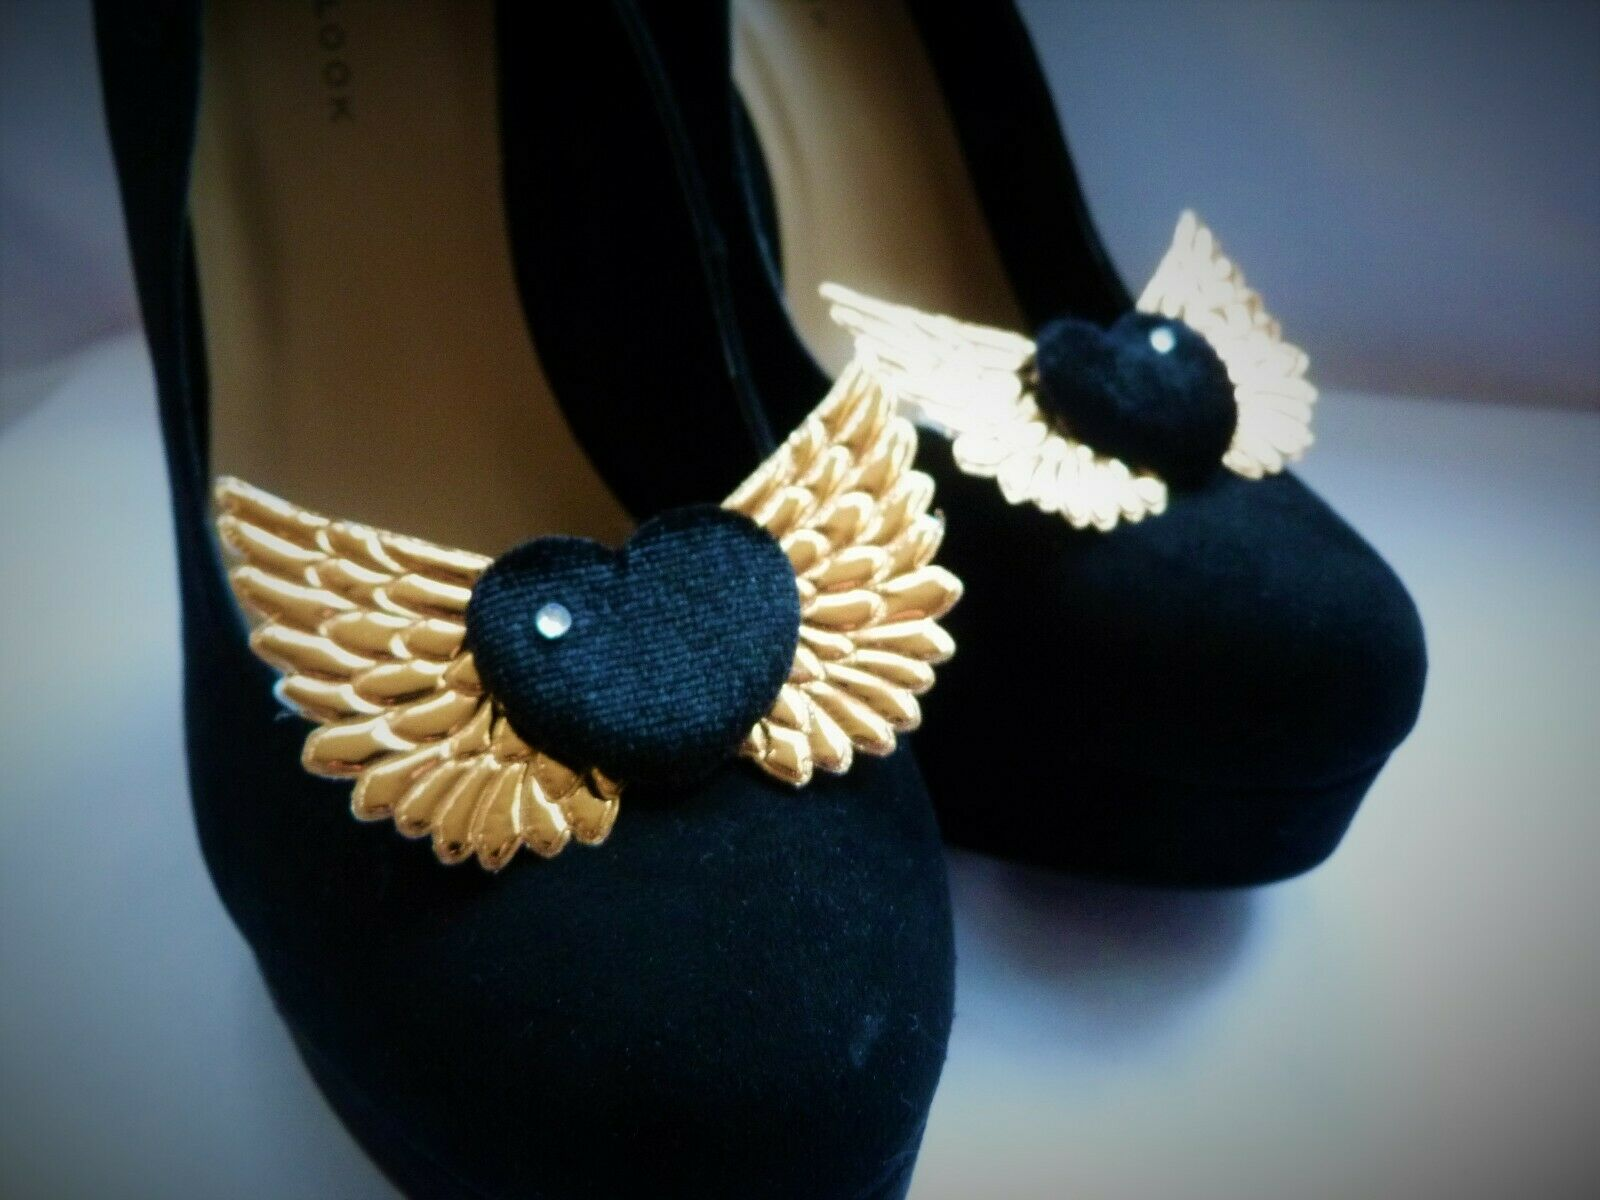 Black Satin Hearts & Gold Wings Shoe Clips - Handcrafted, Rock'n'Roll Bride